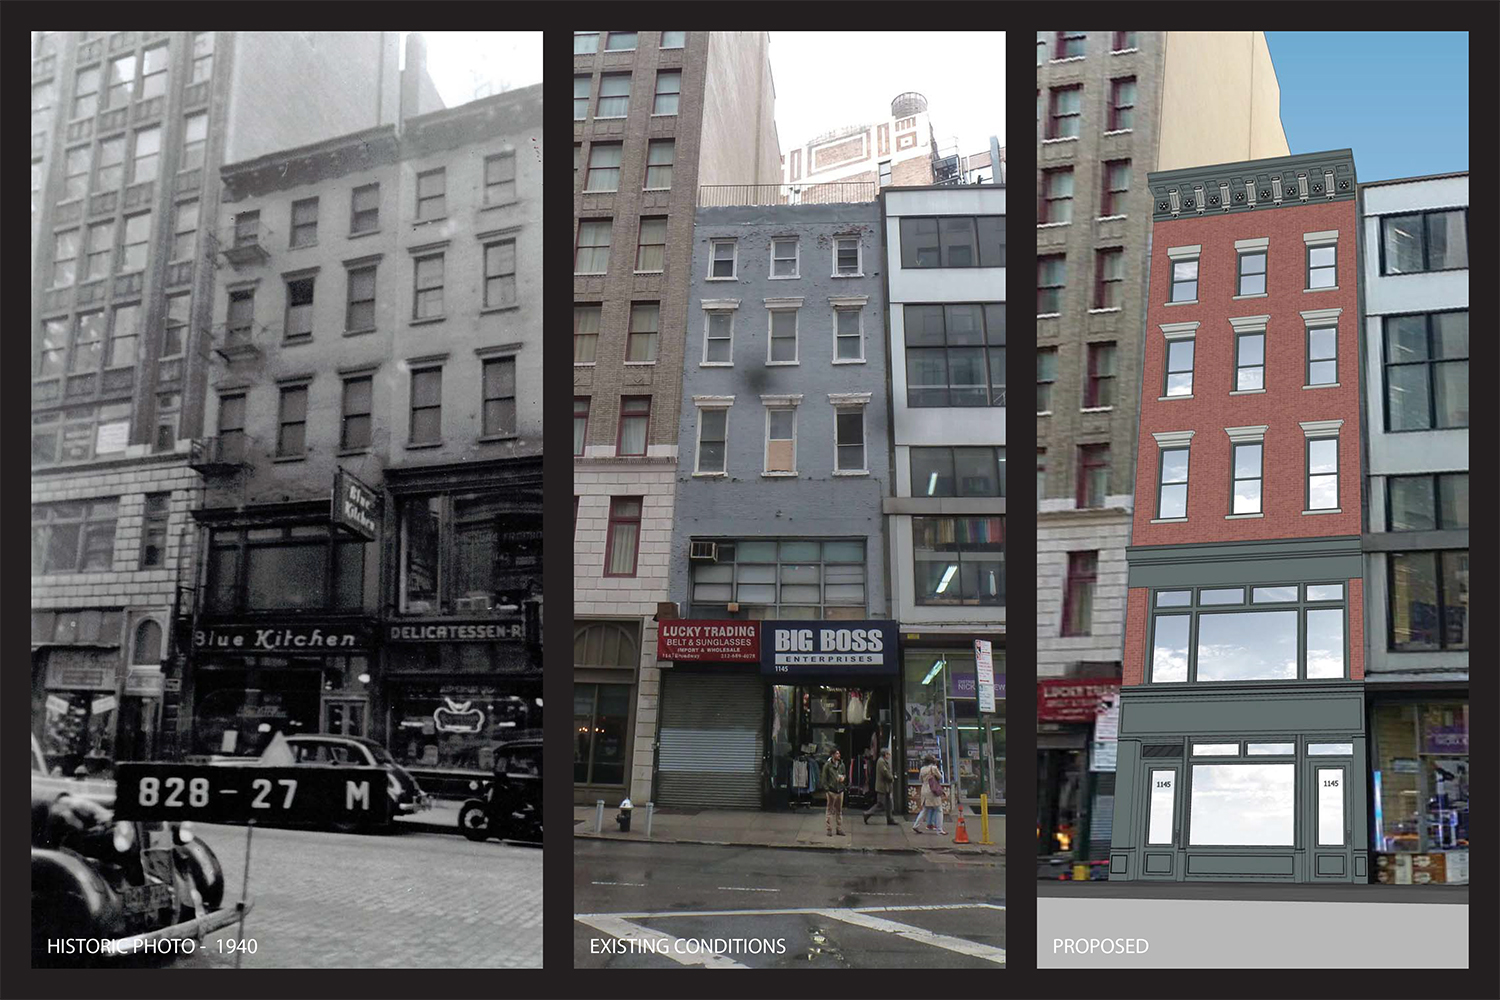 Historic, existing, and proposed facades at 1145 Broadway.